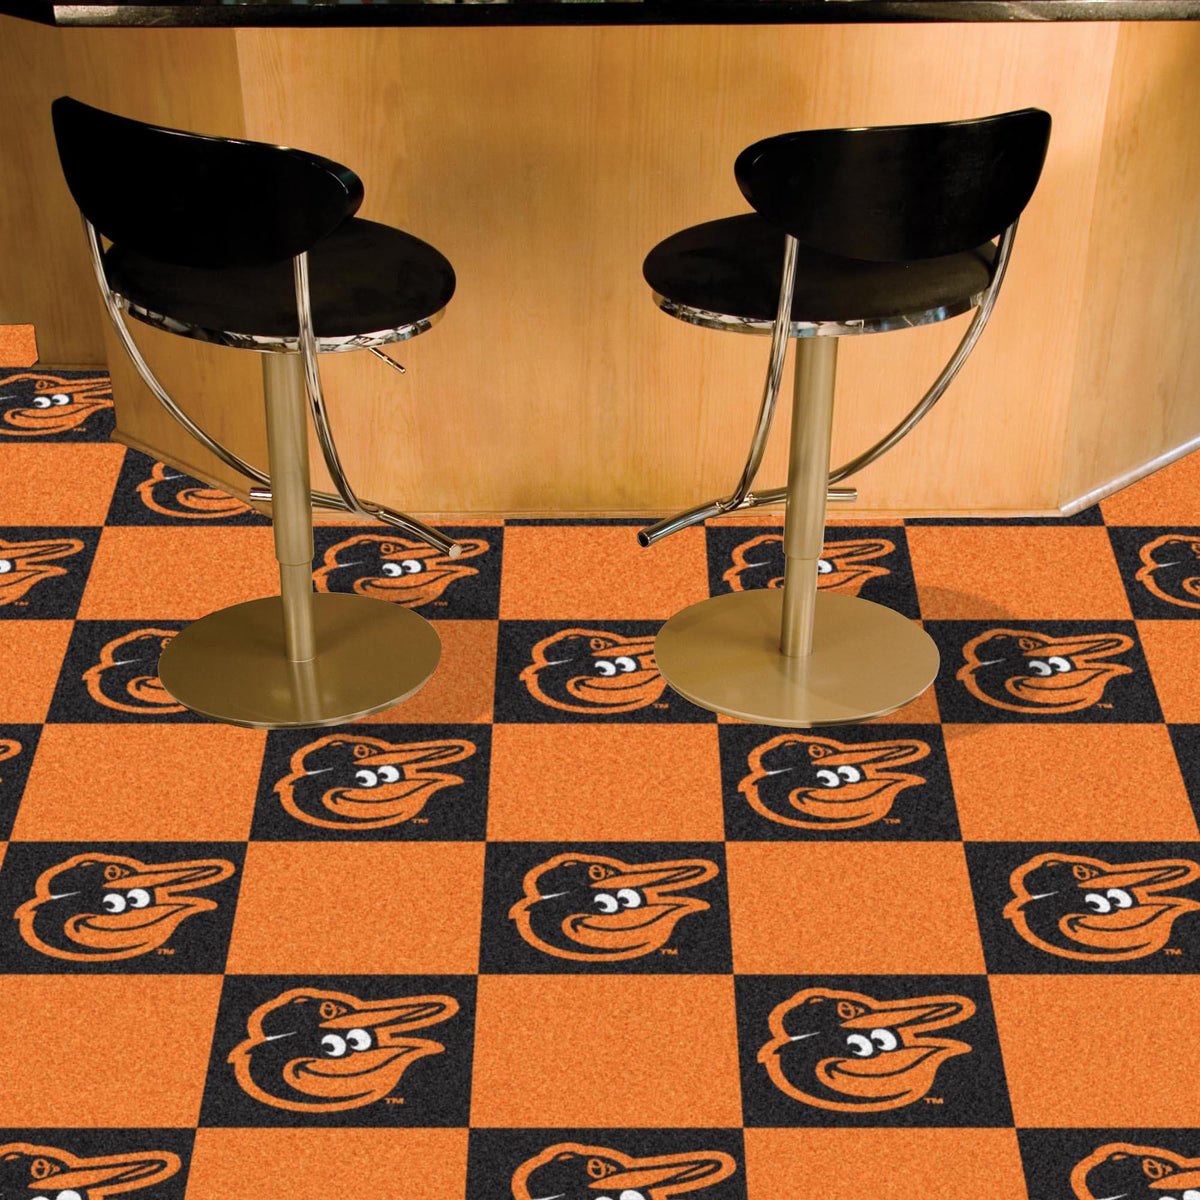 MLB - Team Carpet Tiles MLB Mats, Carpet Tile Flooring, Team Carpet Tiles, MLB, Home Fan Mats Baltimore Orioles 2